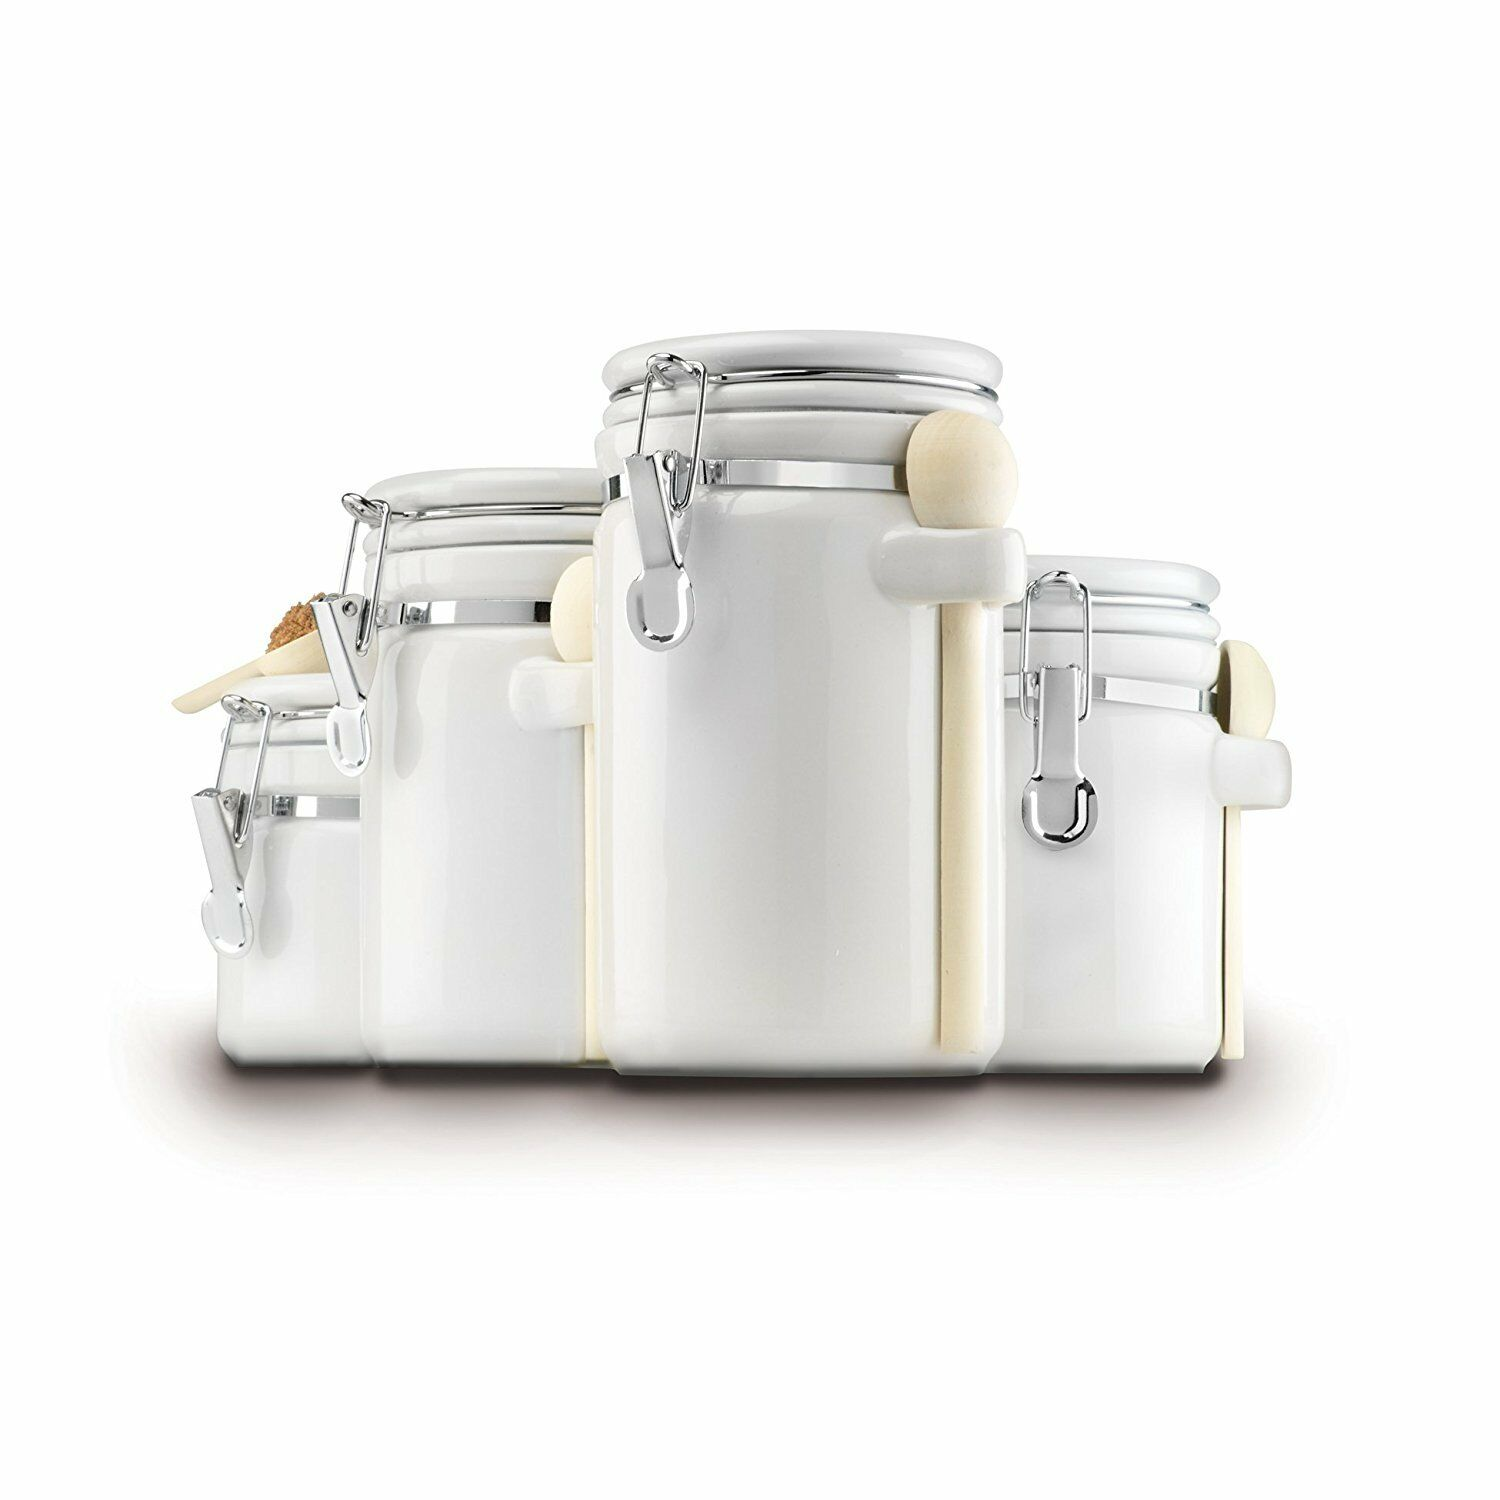 white canister set 4 piece kitchen counter storage containers white canister set 4 piece kitchen counter storage containers flour sugar and